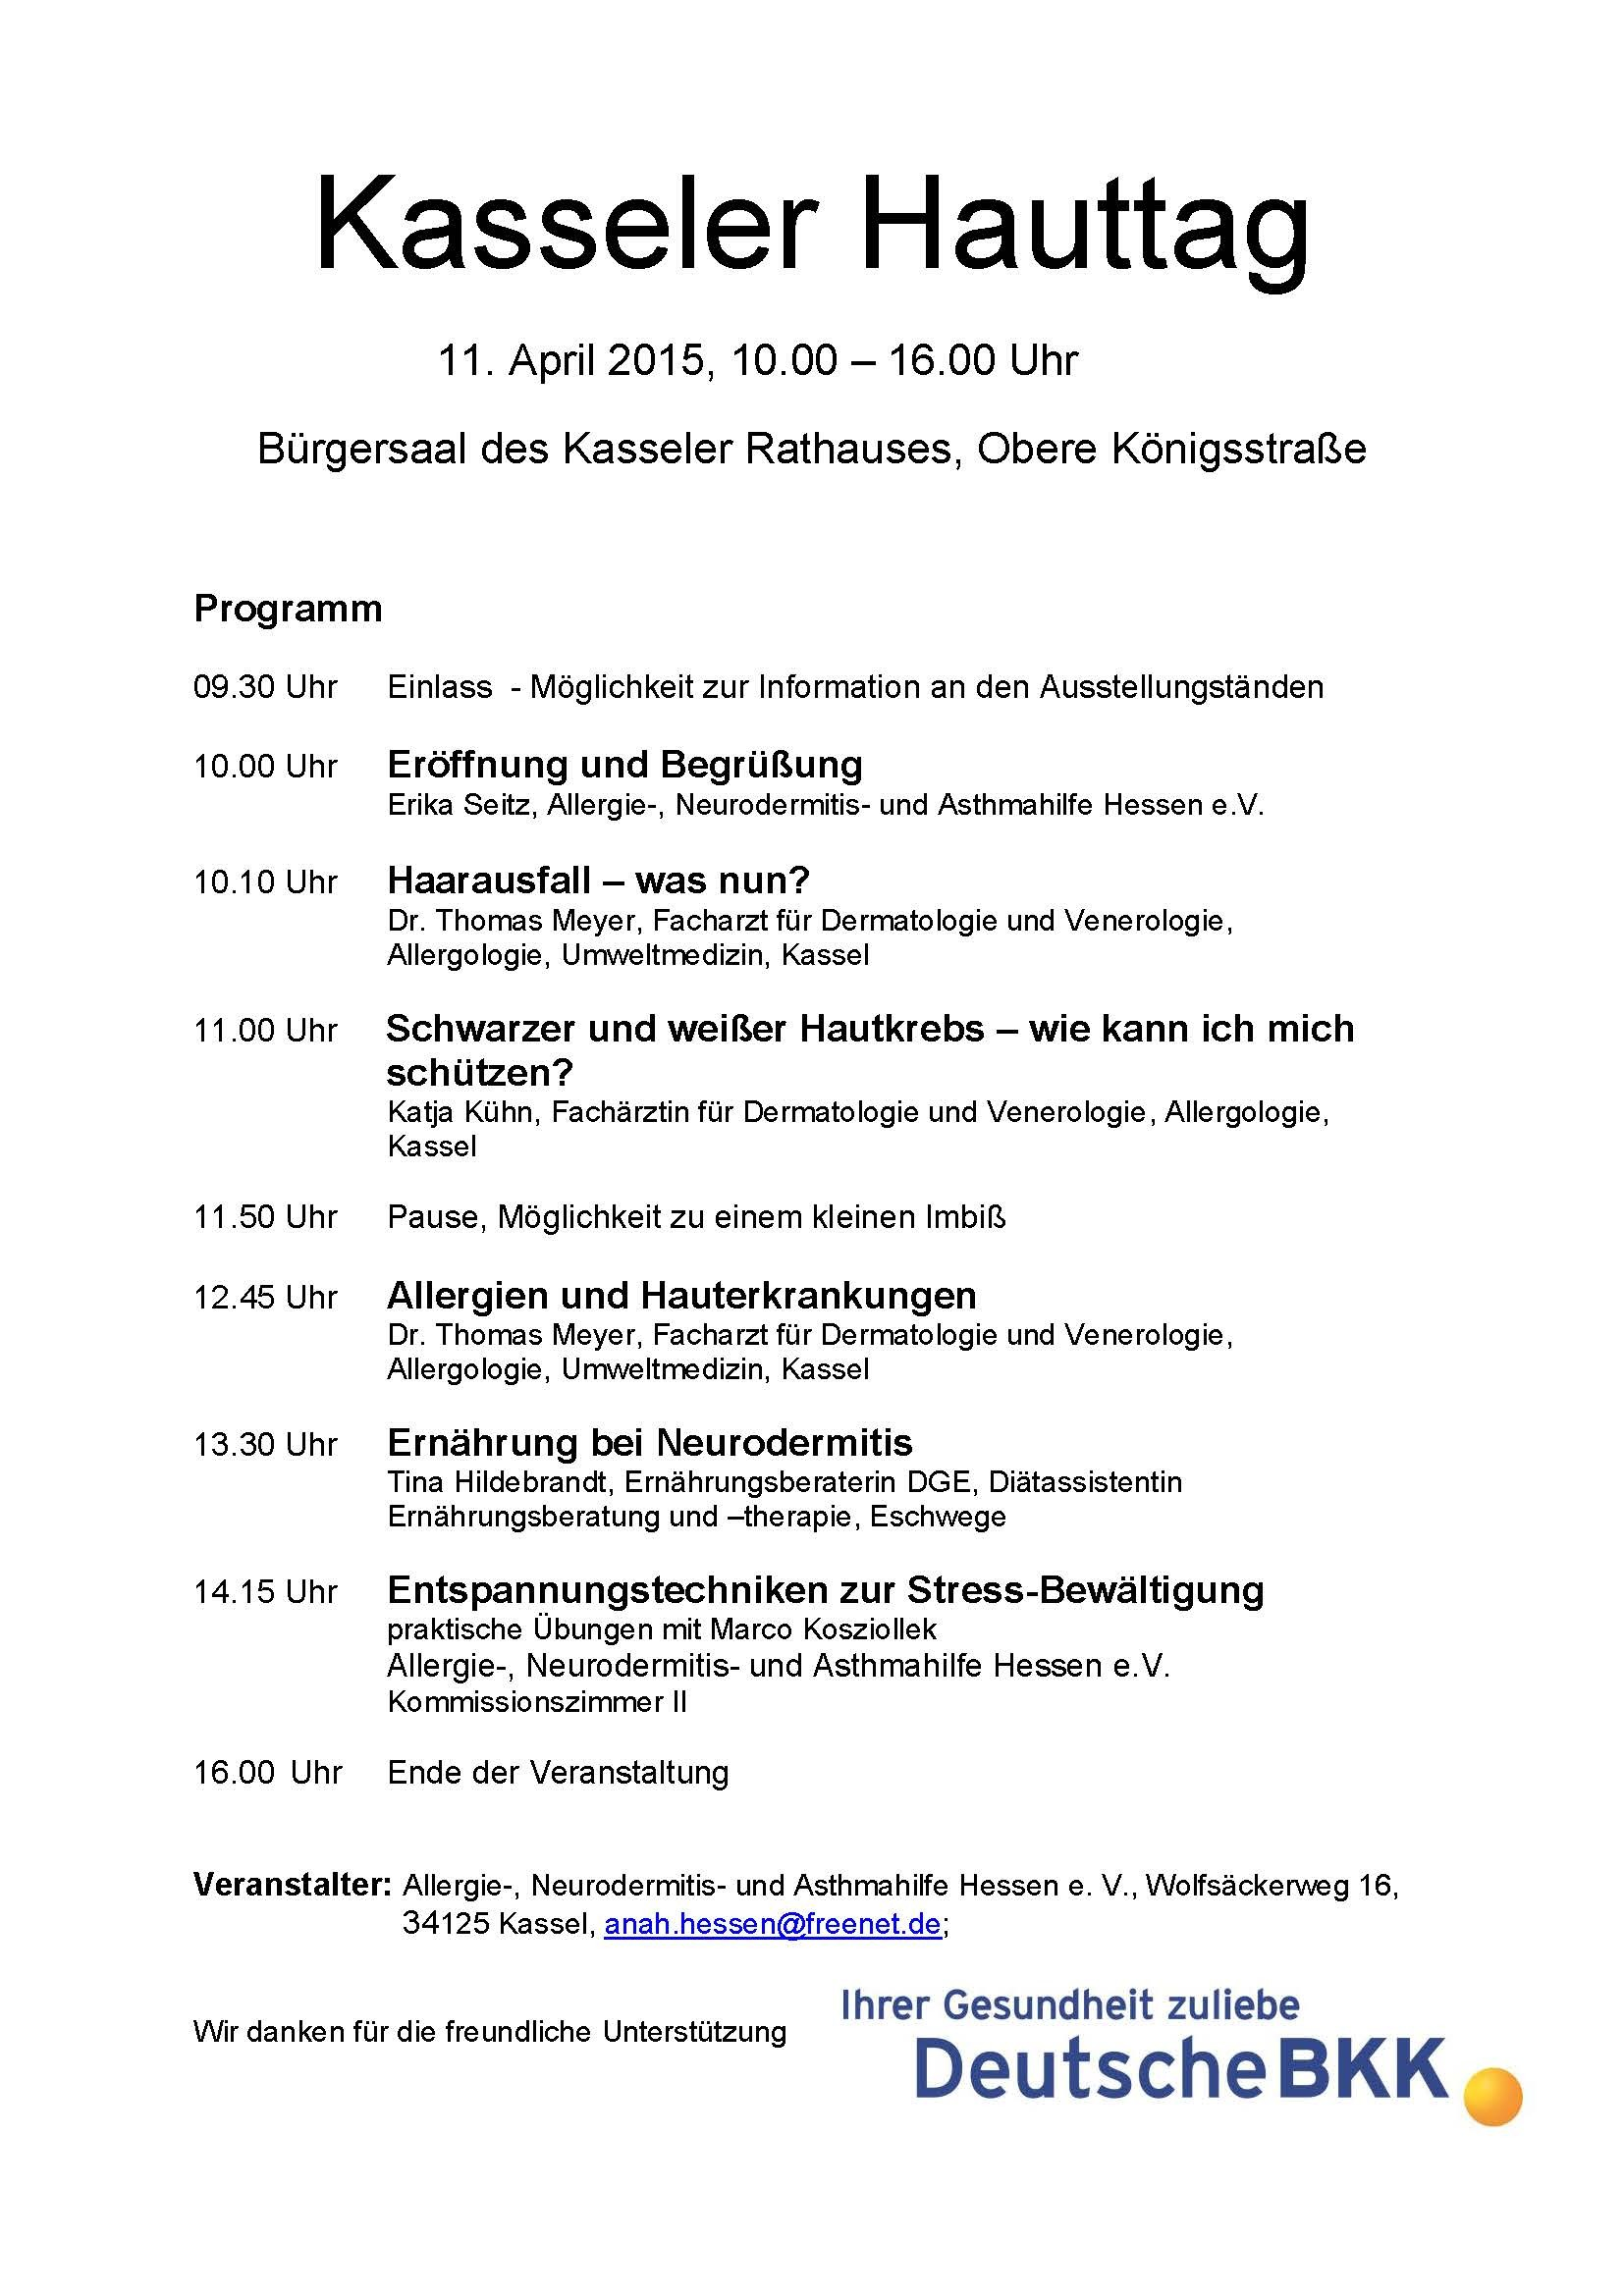 Kasseler Hauttag am 11. April 2015